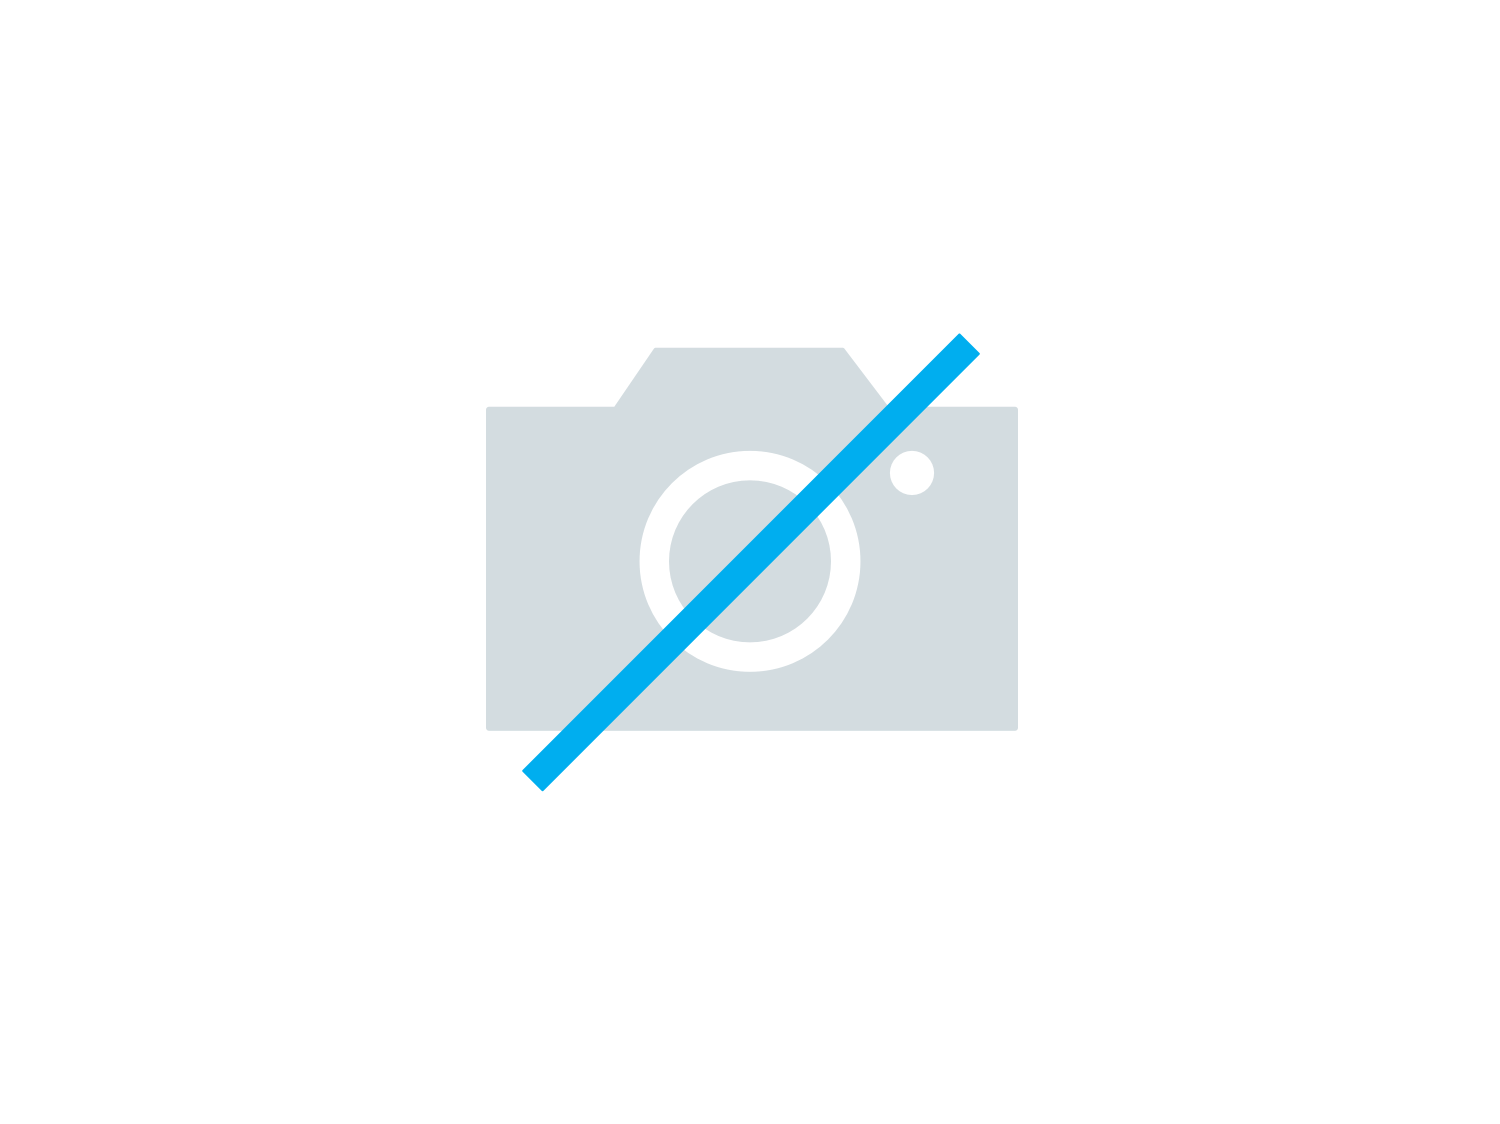 Washandje Royal Touch 16x22cm grey charcoal